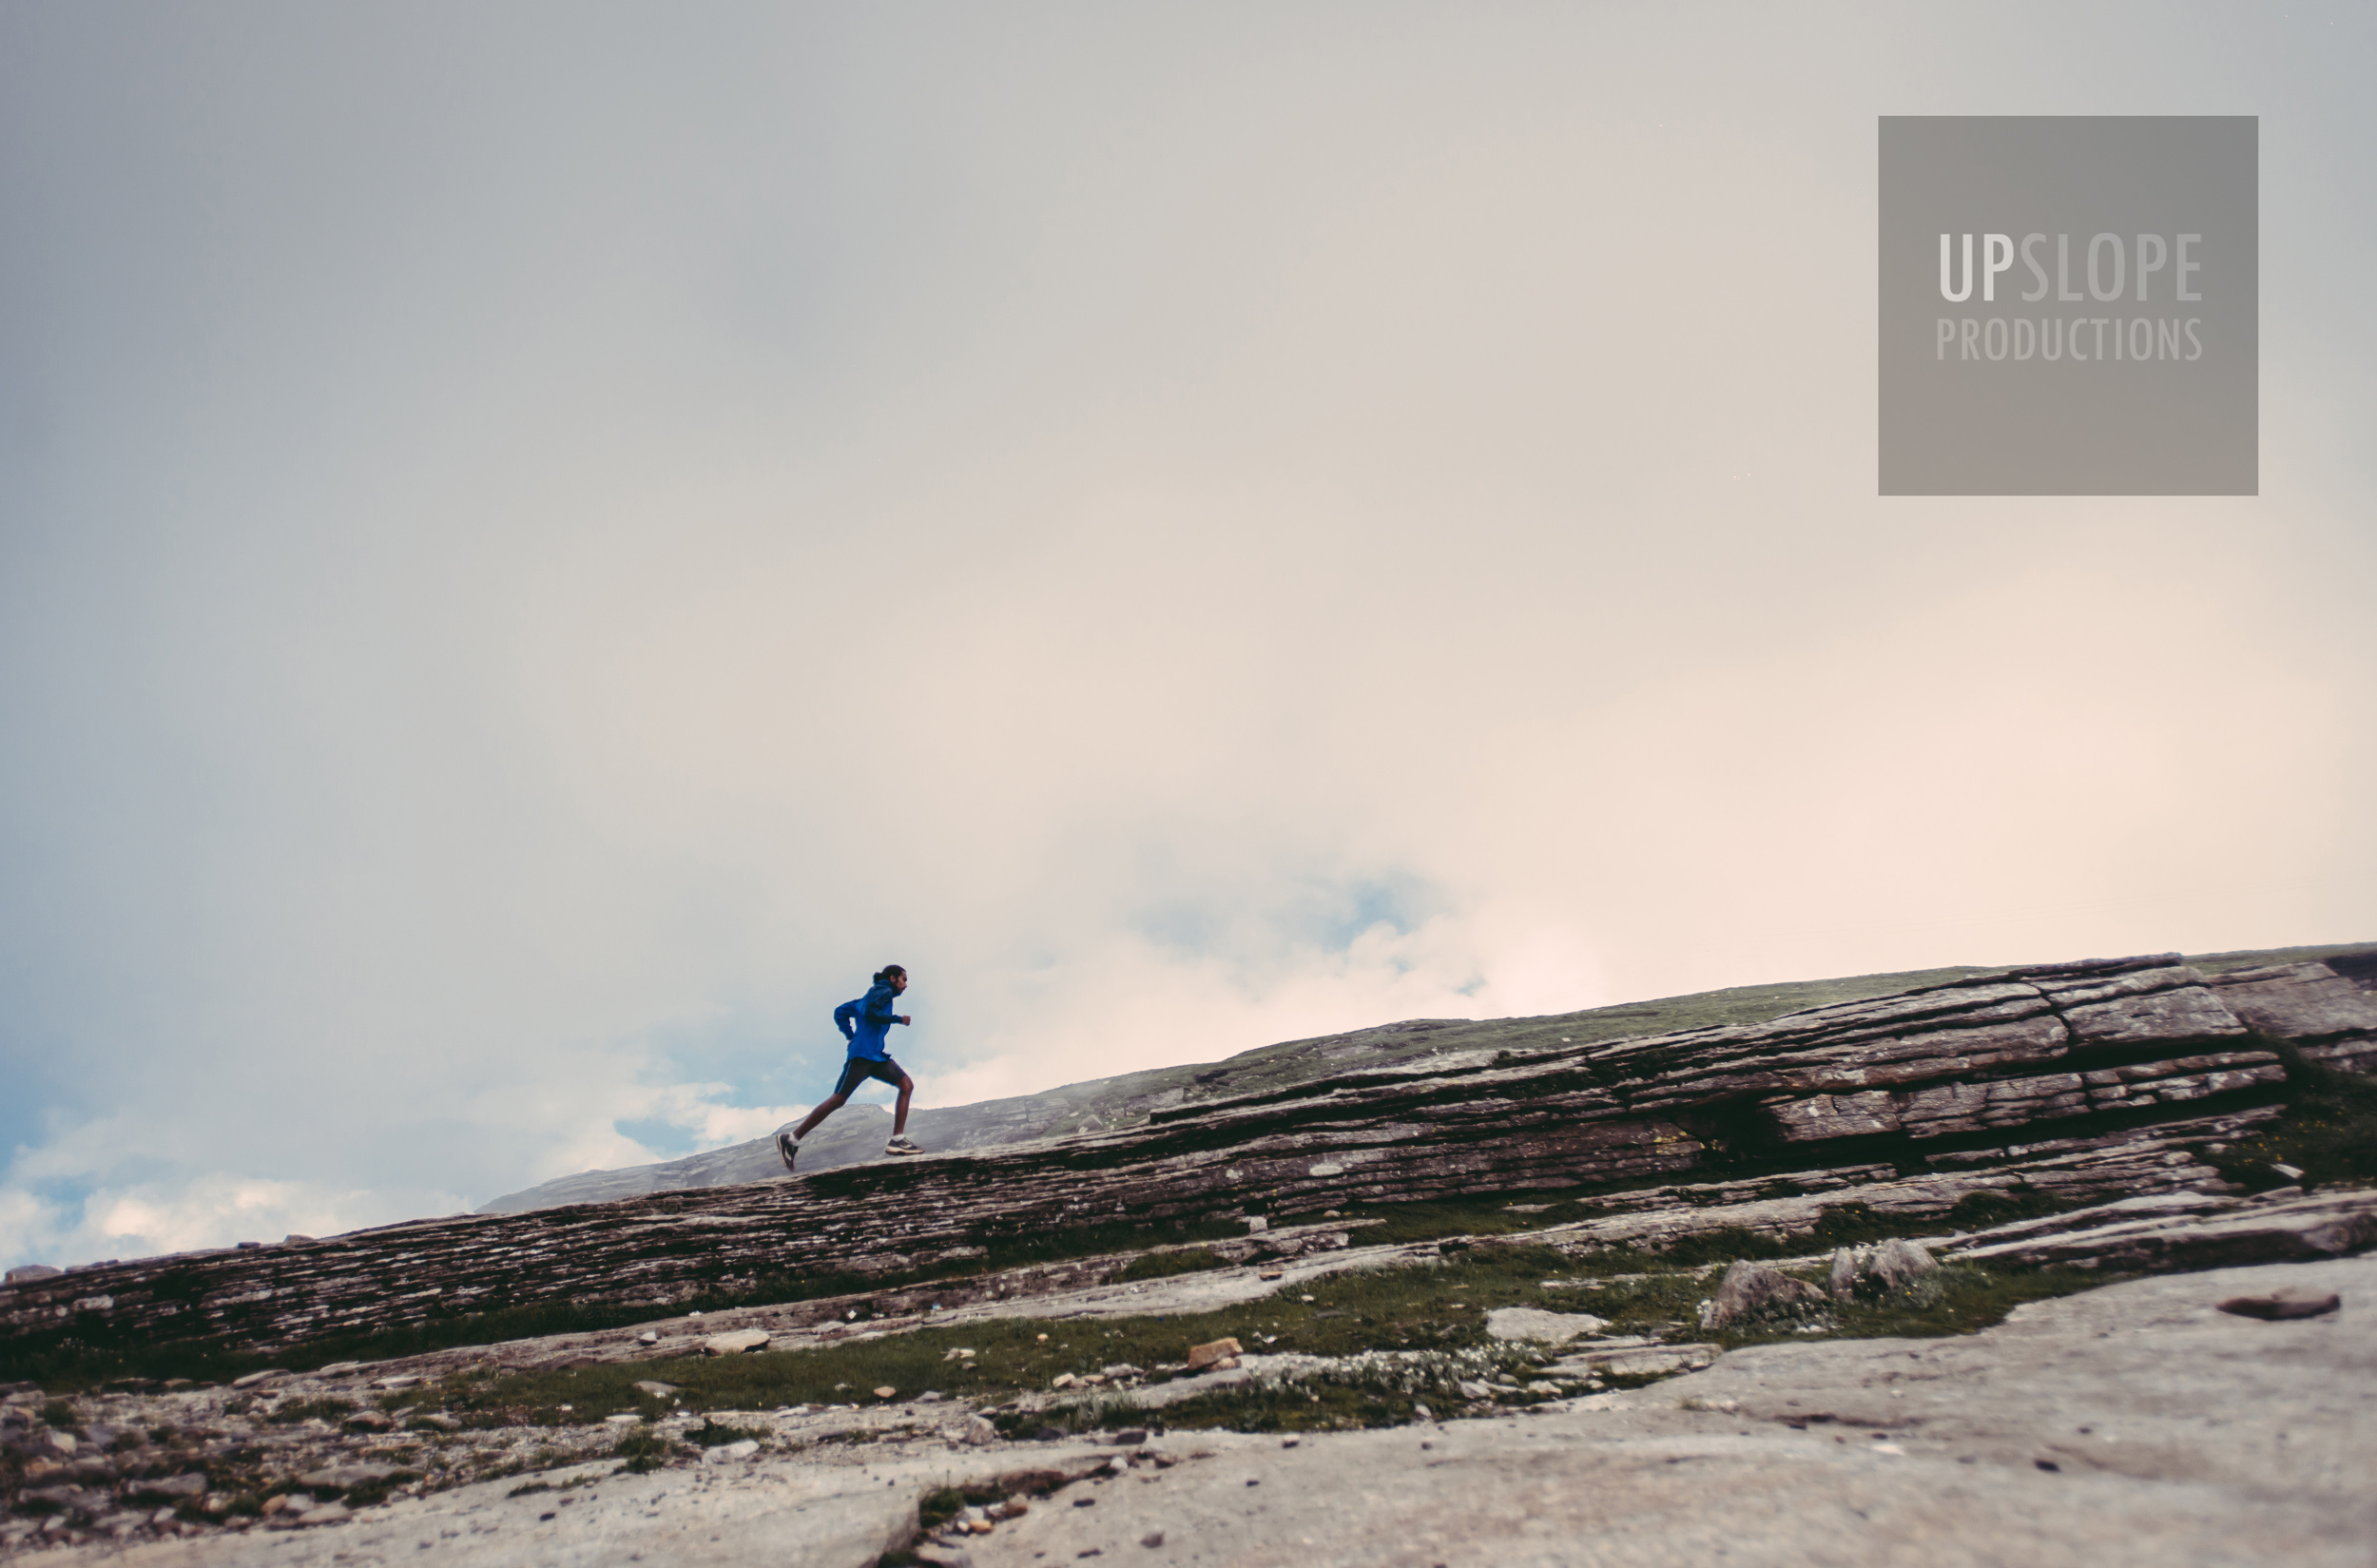 A training run, somewhere in the Himalayas. Photo © UPSlope Productions